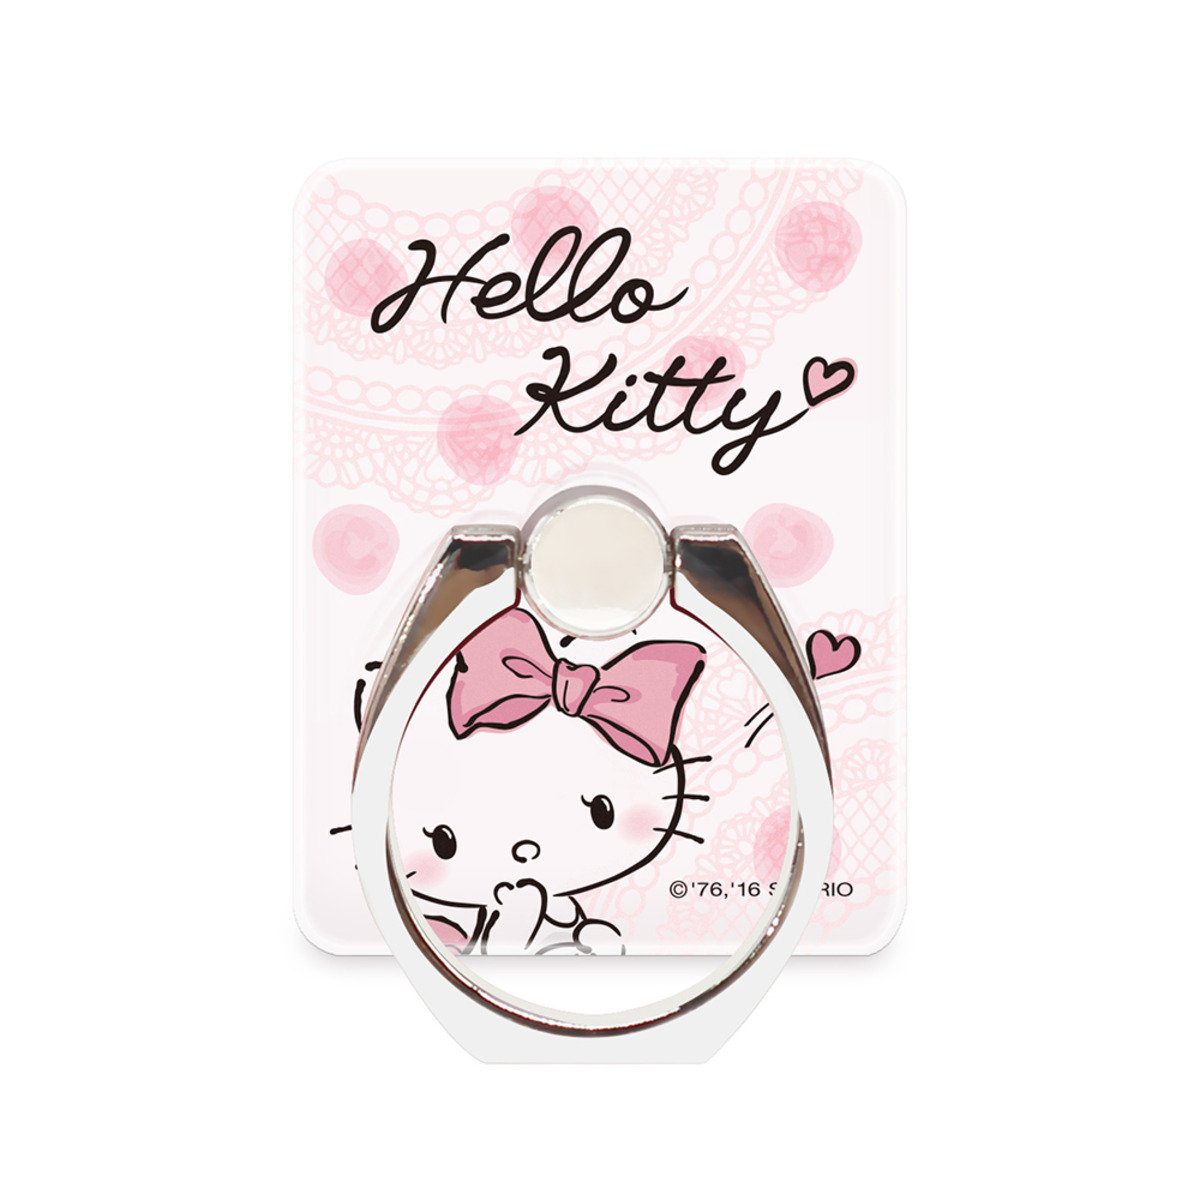 Hello Kitty Ring Grip/Stand Holder UPC 4713213350805